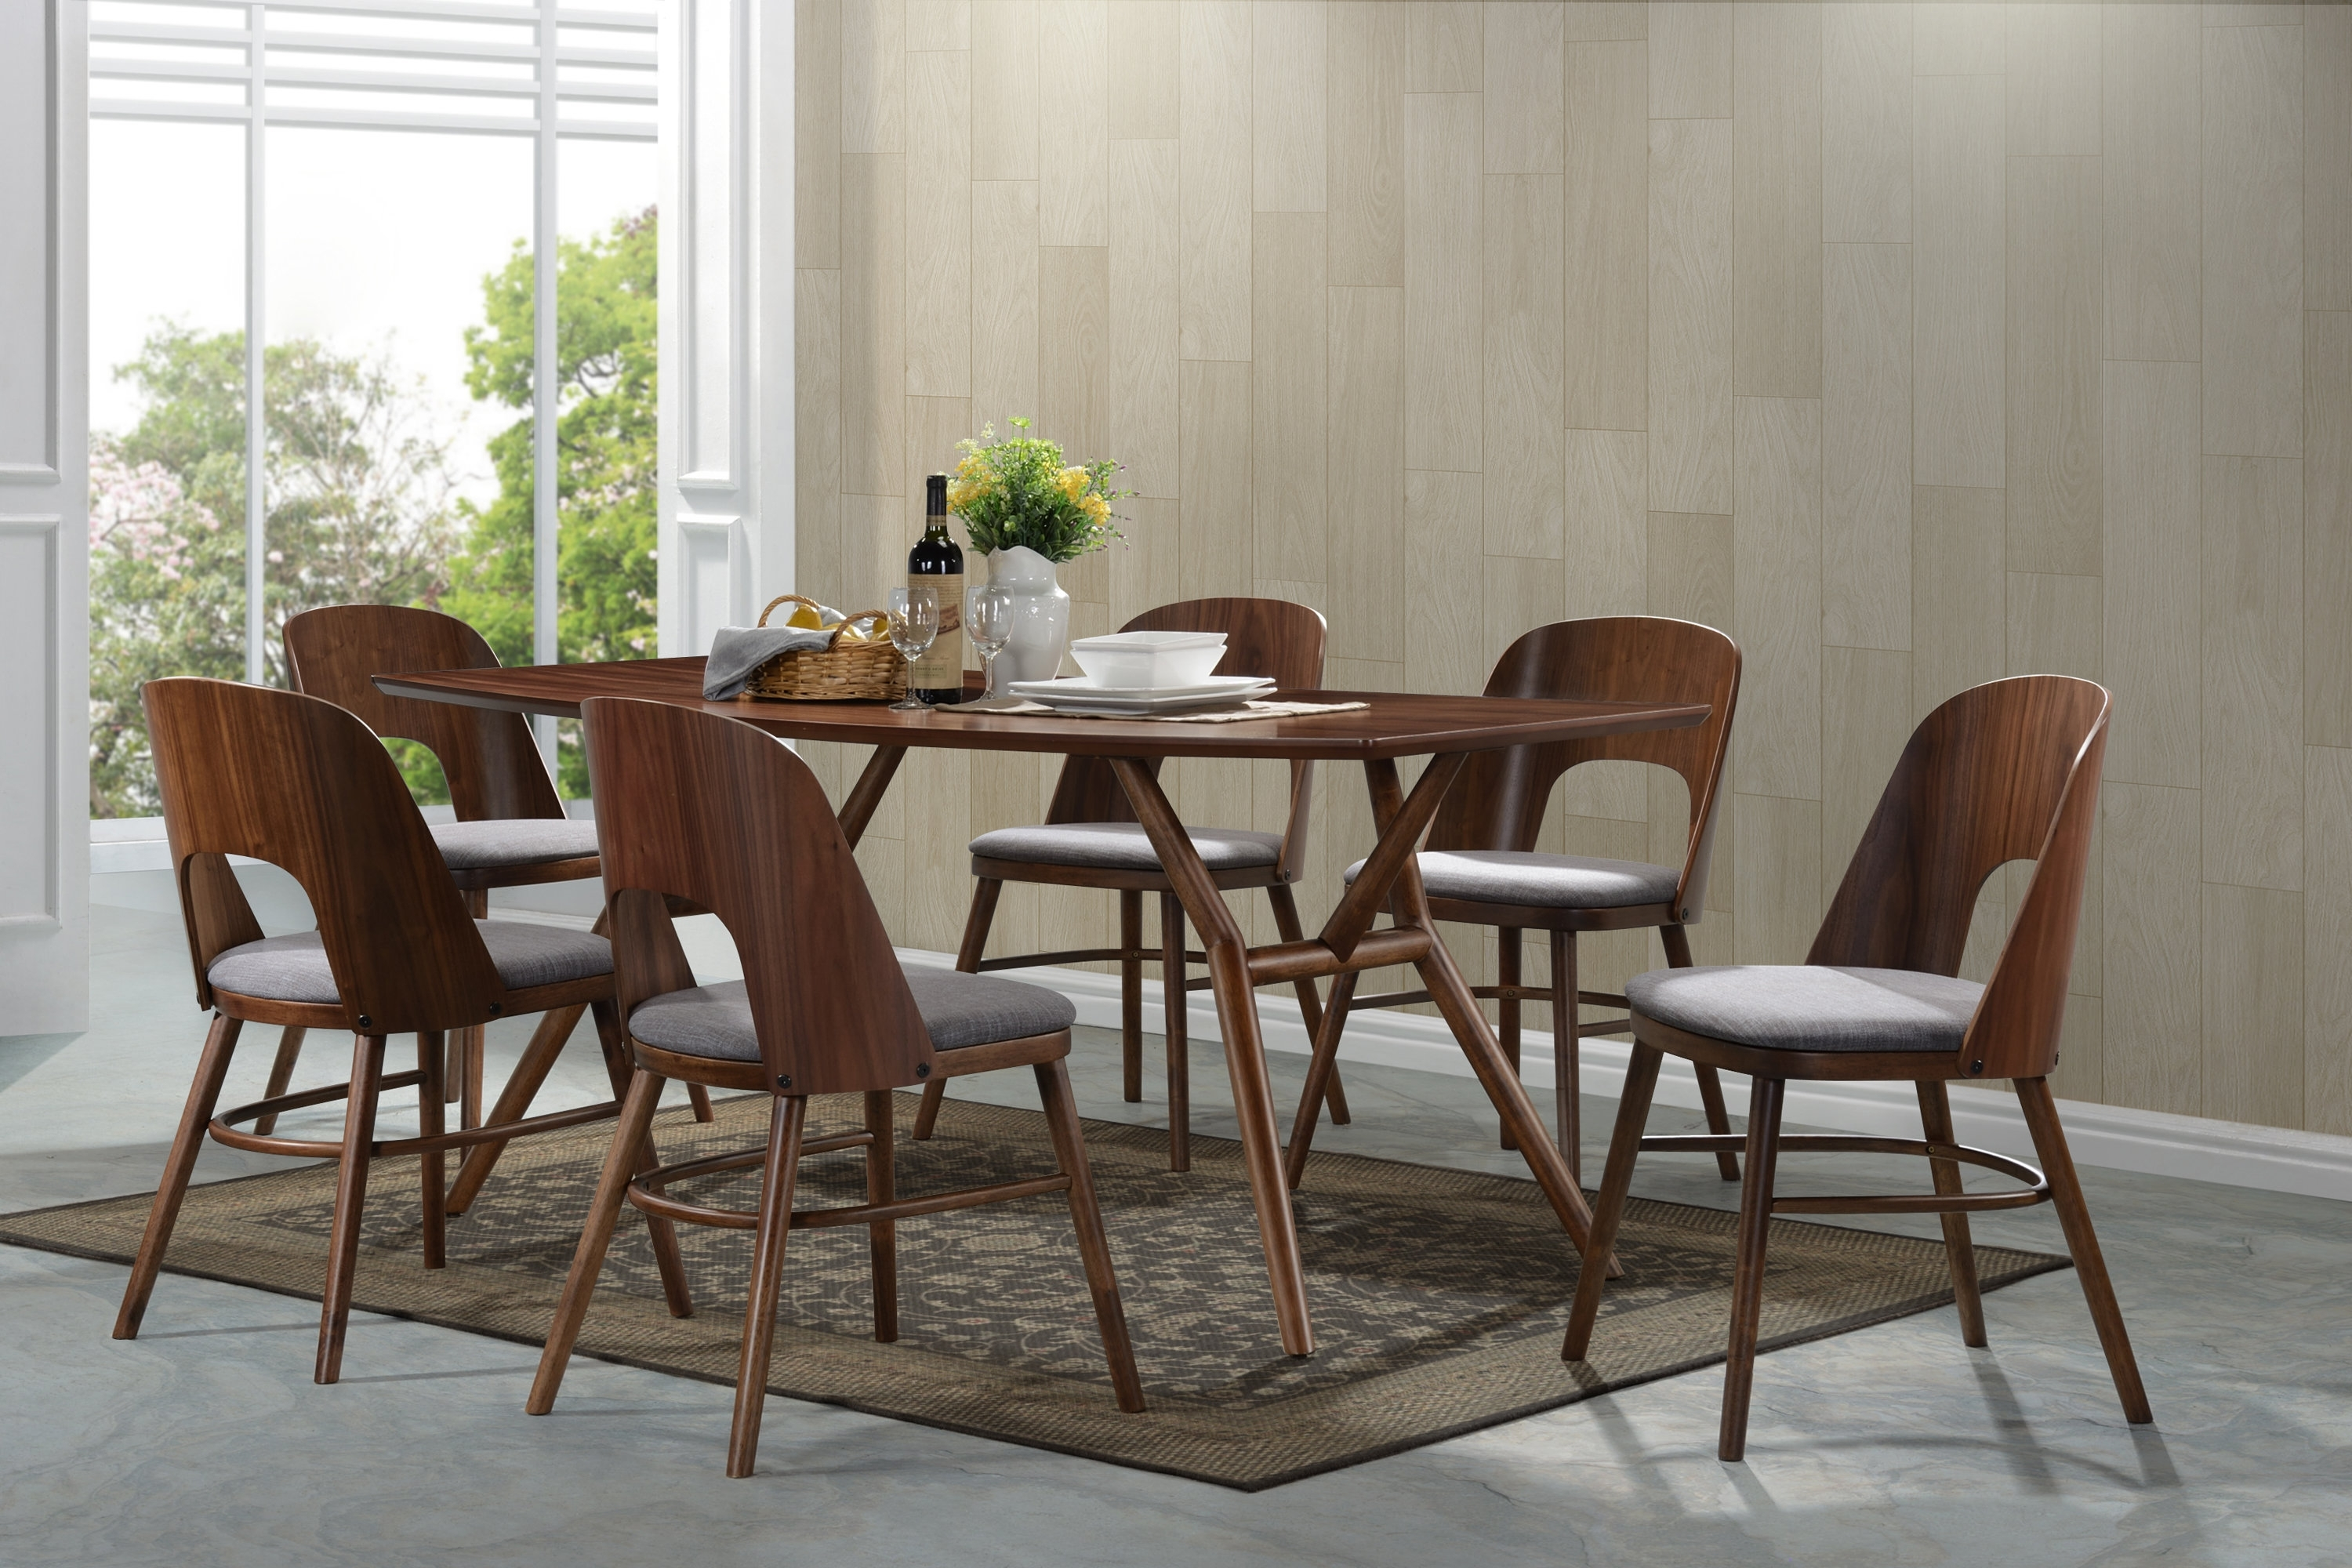 Corrigan Studio Kirsten Dining Set | Wayfair In Most Up To Date Kirsten 5 Piece Dining Sets (Image 8 of 20)